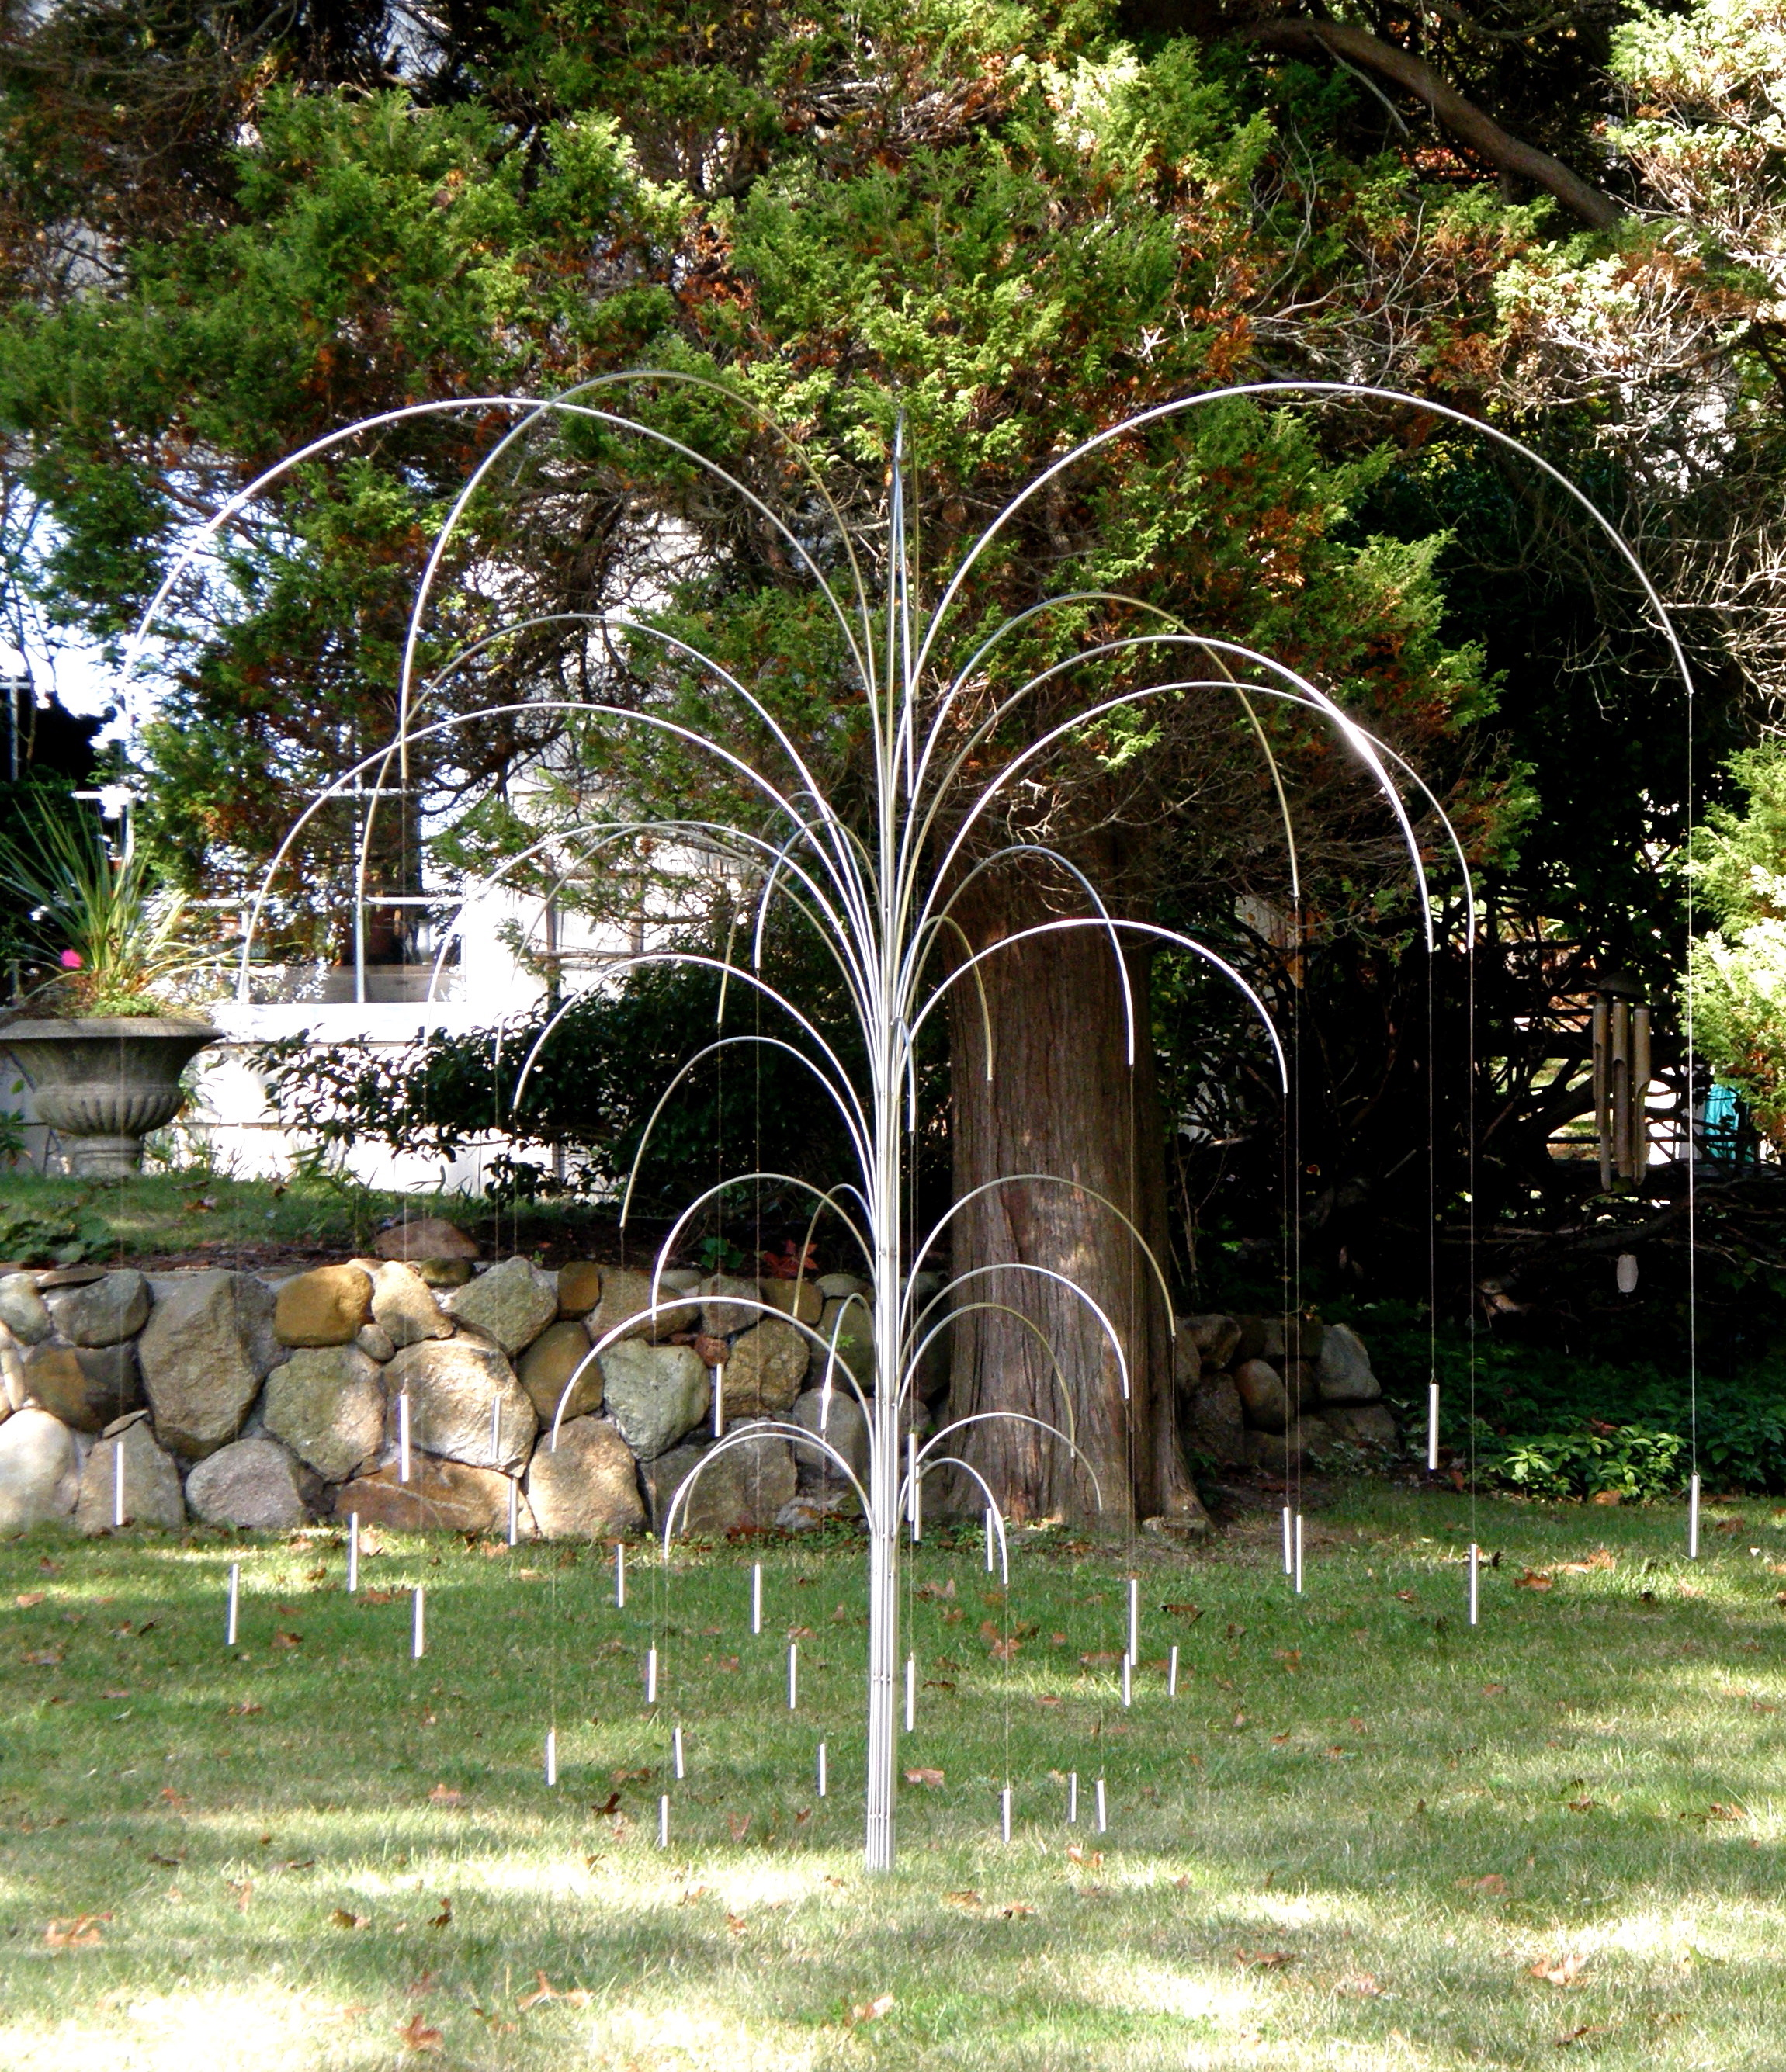 Willow, 2007, stainless steel, 6 x 7 x 7 in, $6,000